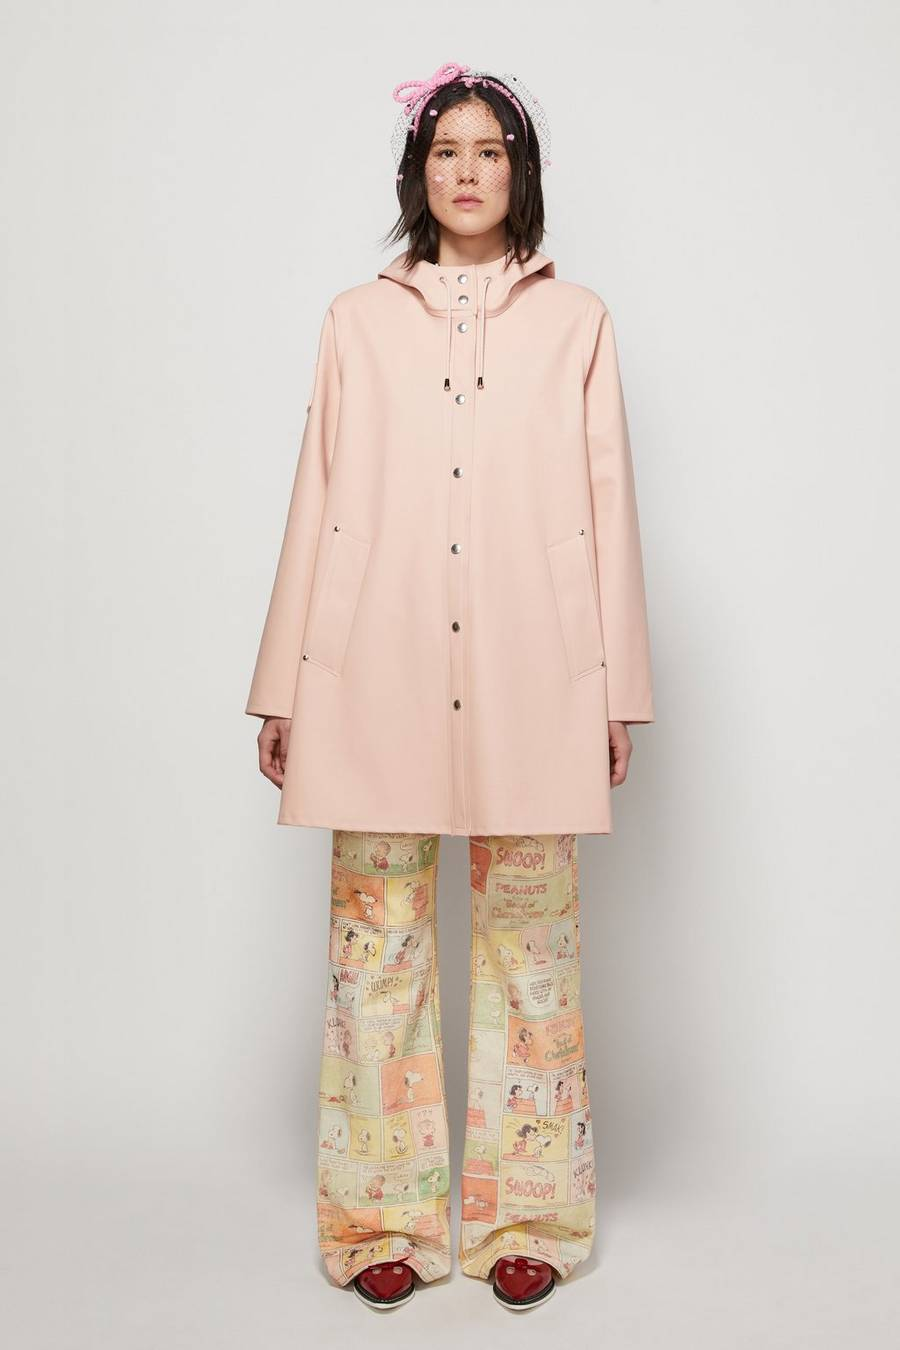 The Raincoat by Marc Jacobs